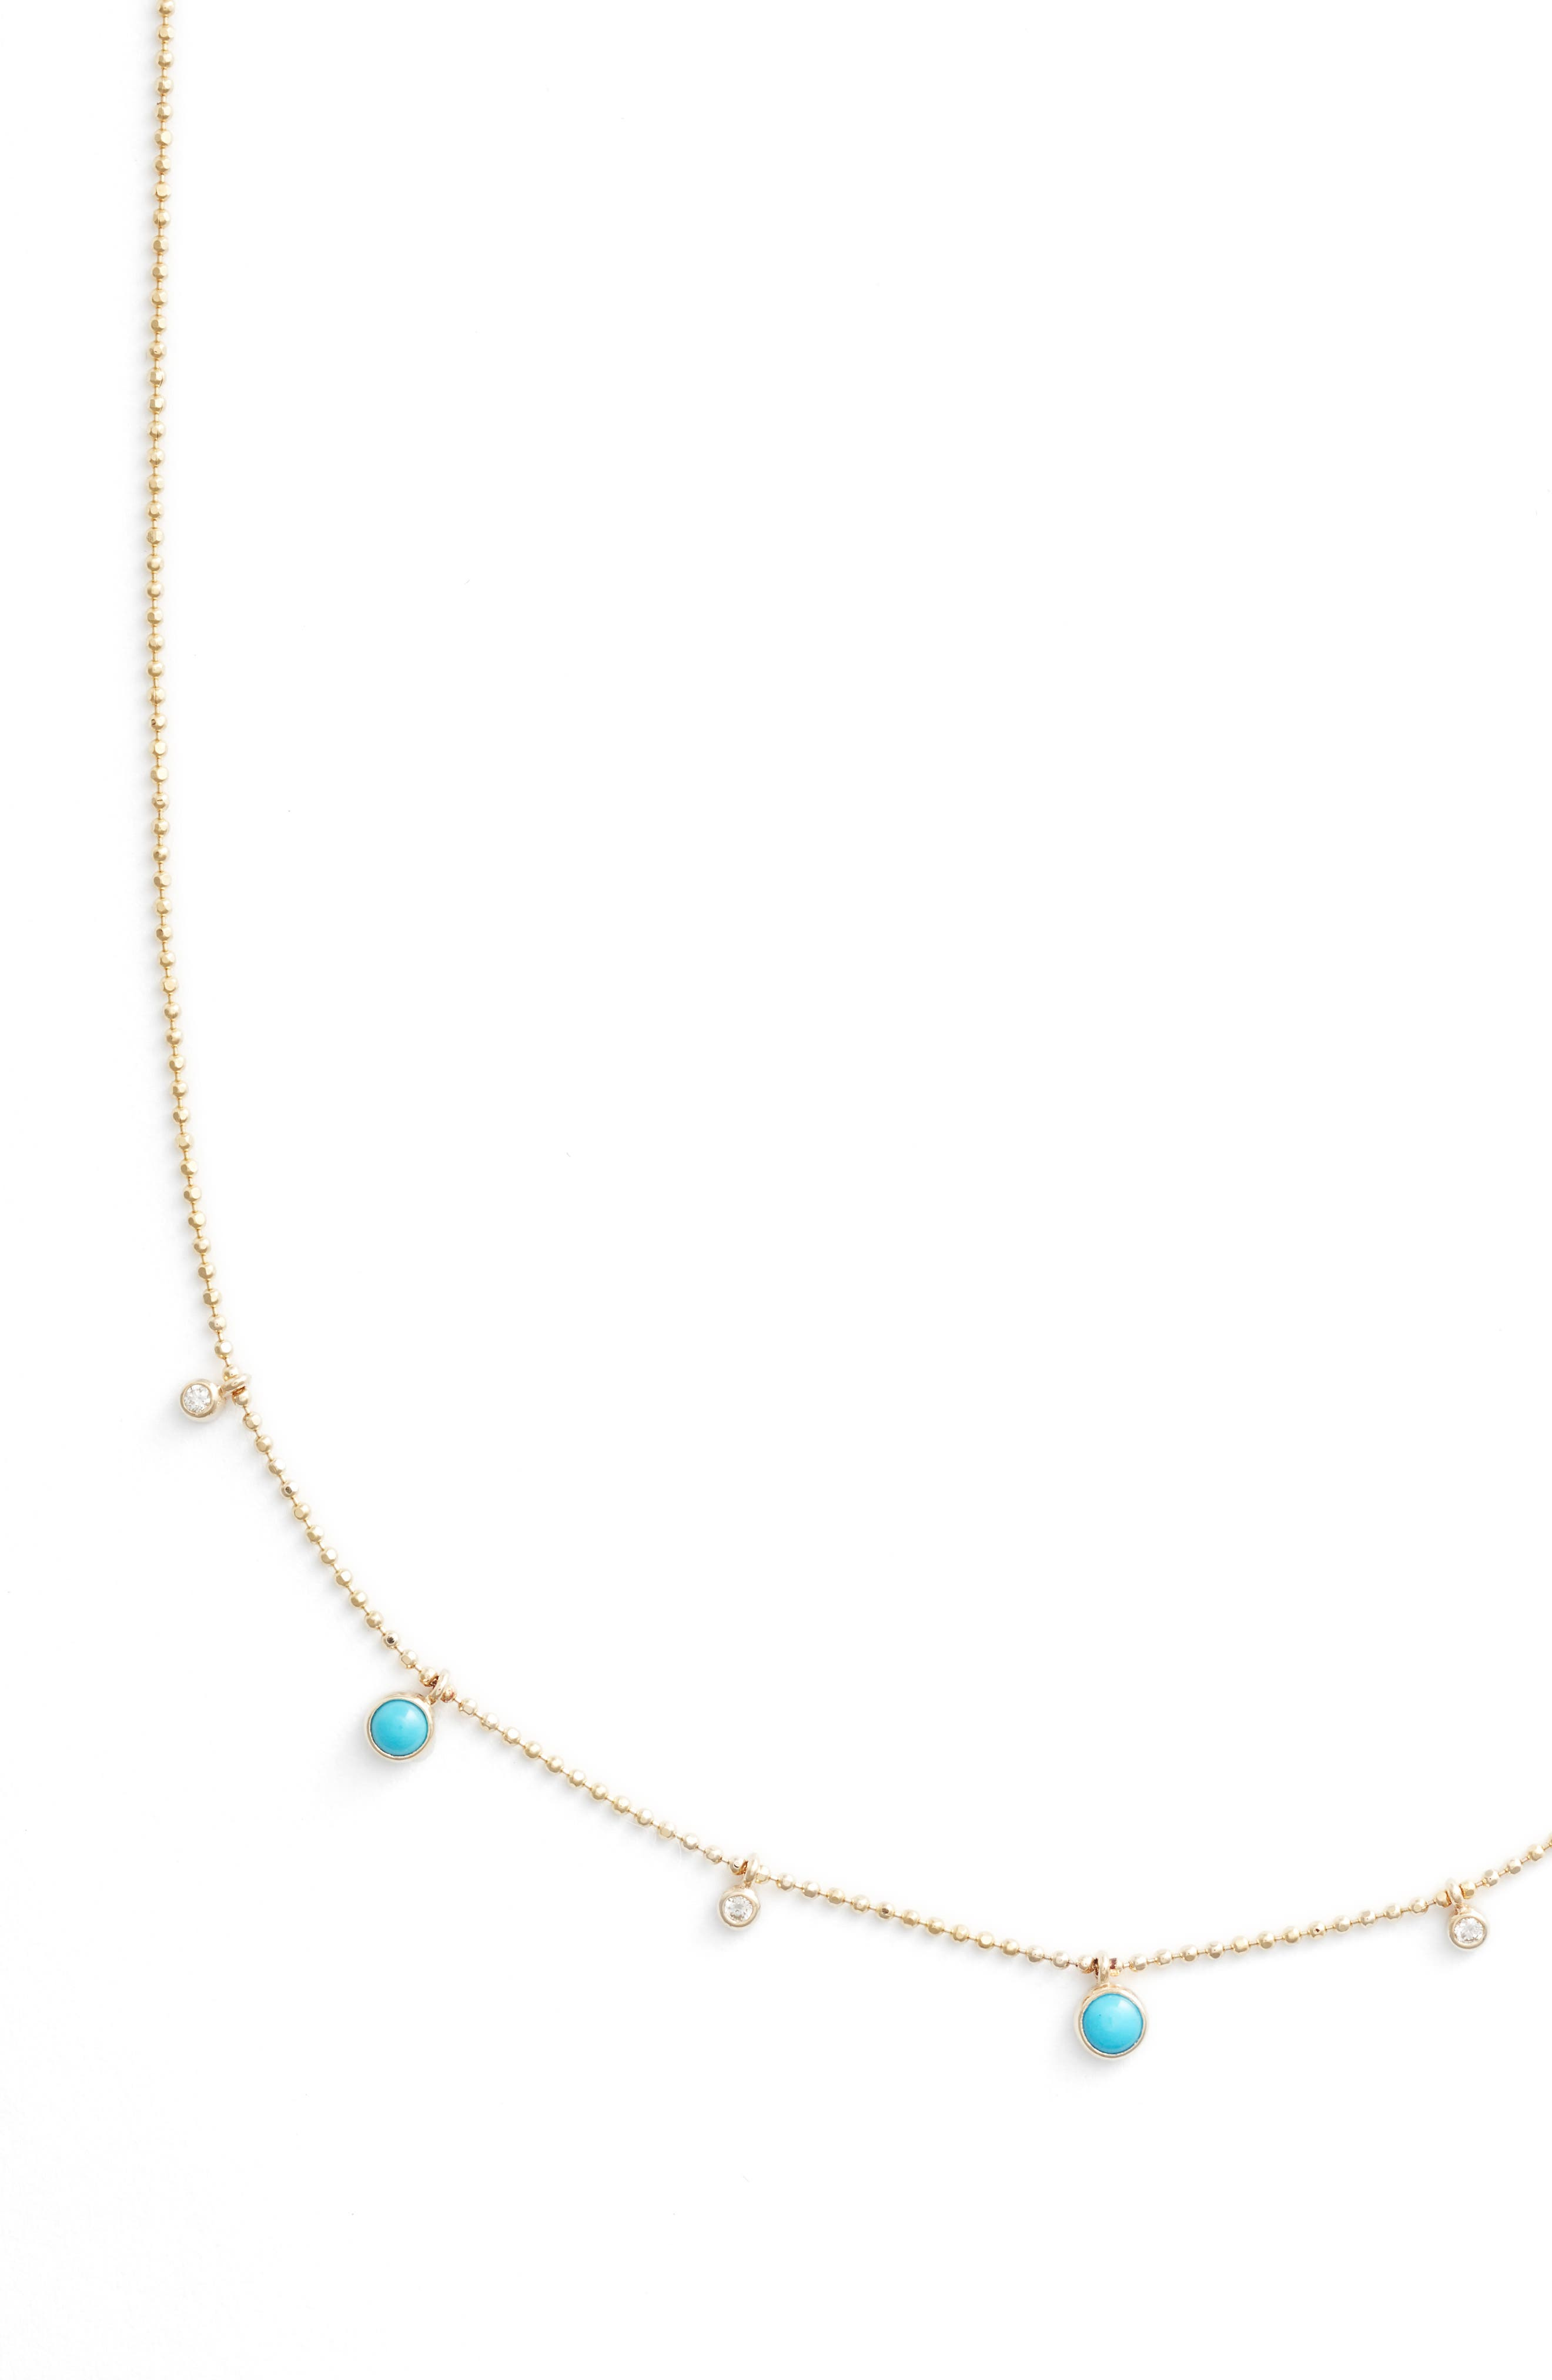 Turquoise & Diamond Station Short Necklace,                             Alternate thumbnail 2, color,                             Yellow Gold